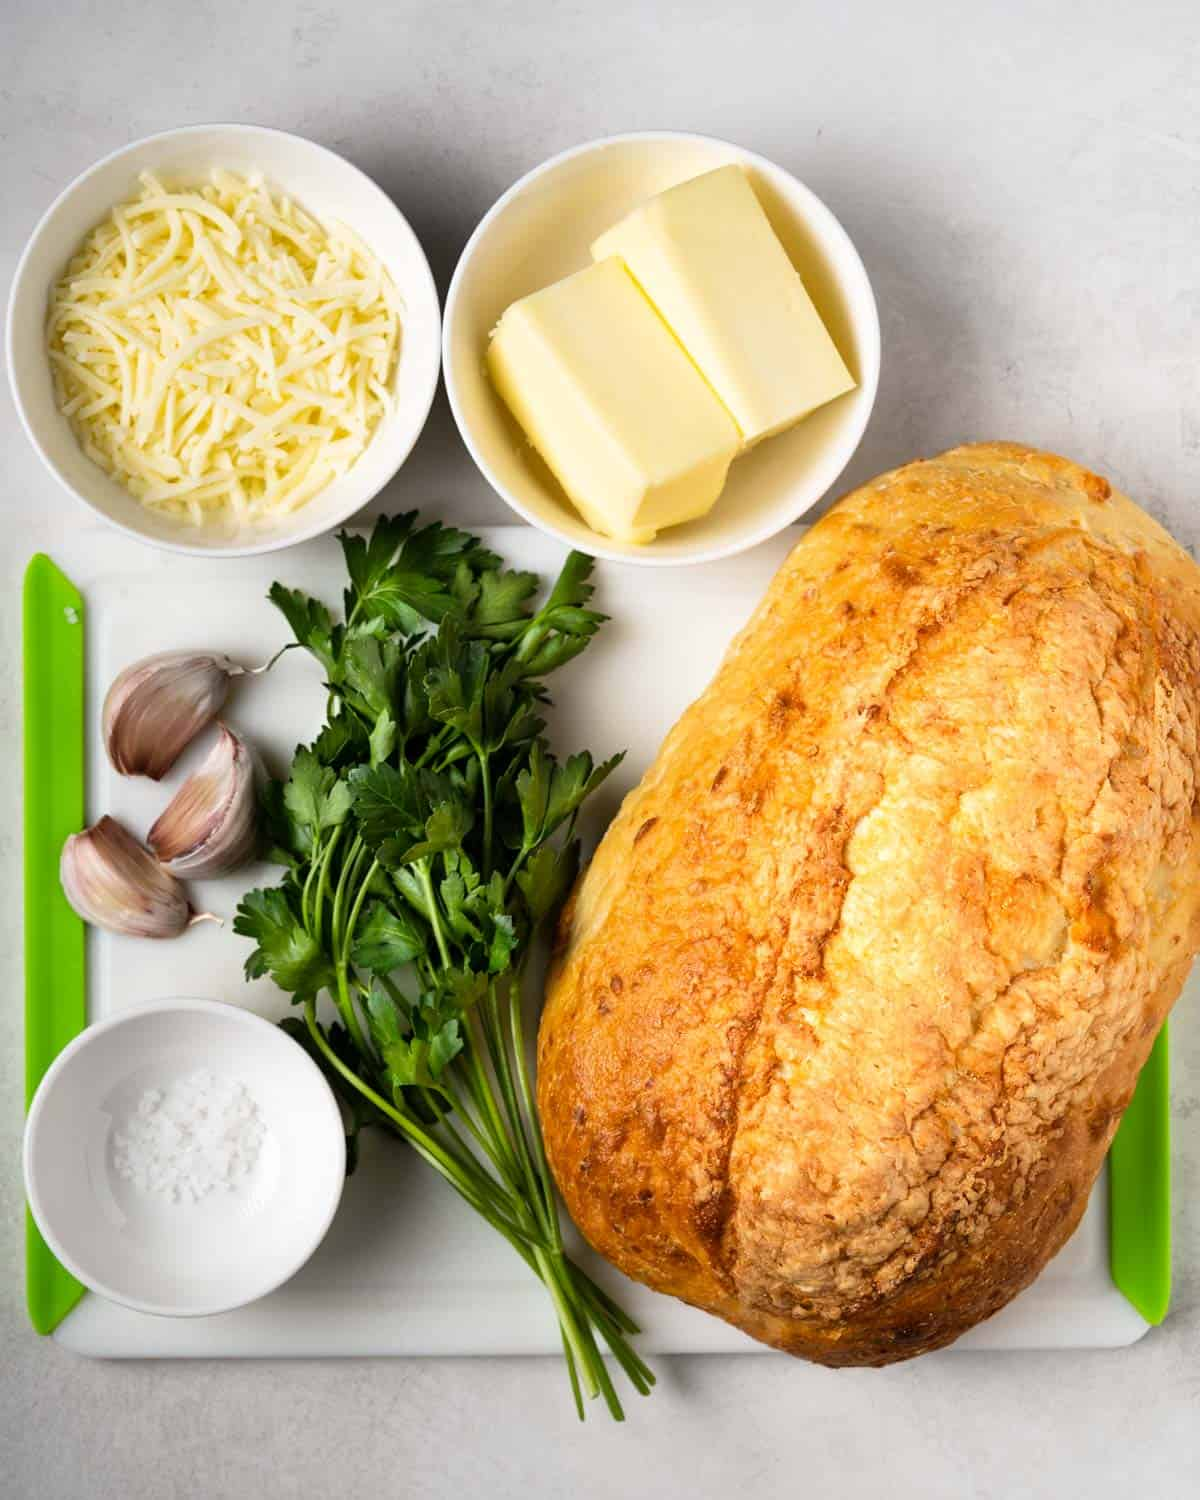 all the ingredients needed to make this recipe: cheese, butter, garlic, parsley, bread, salt